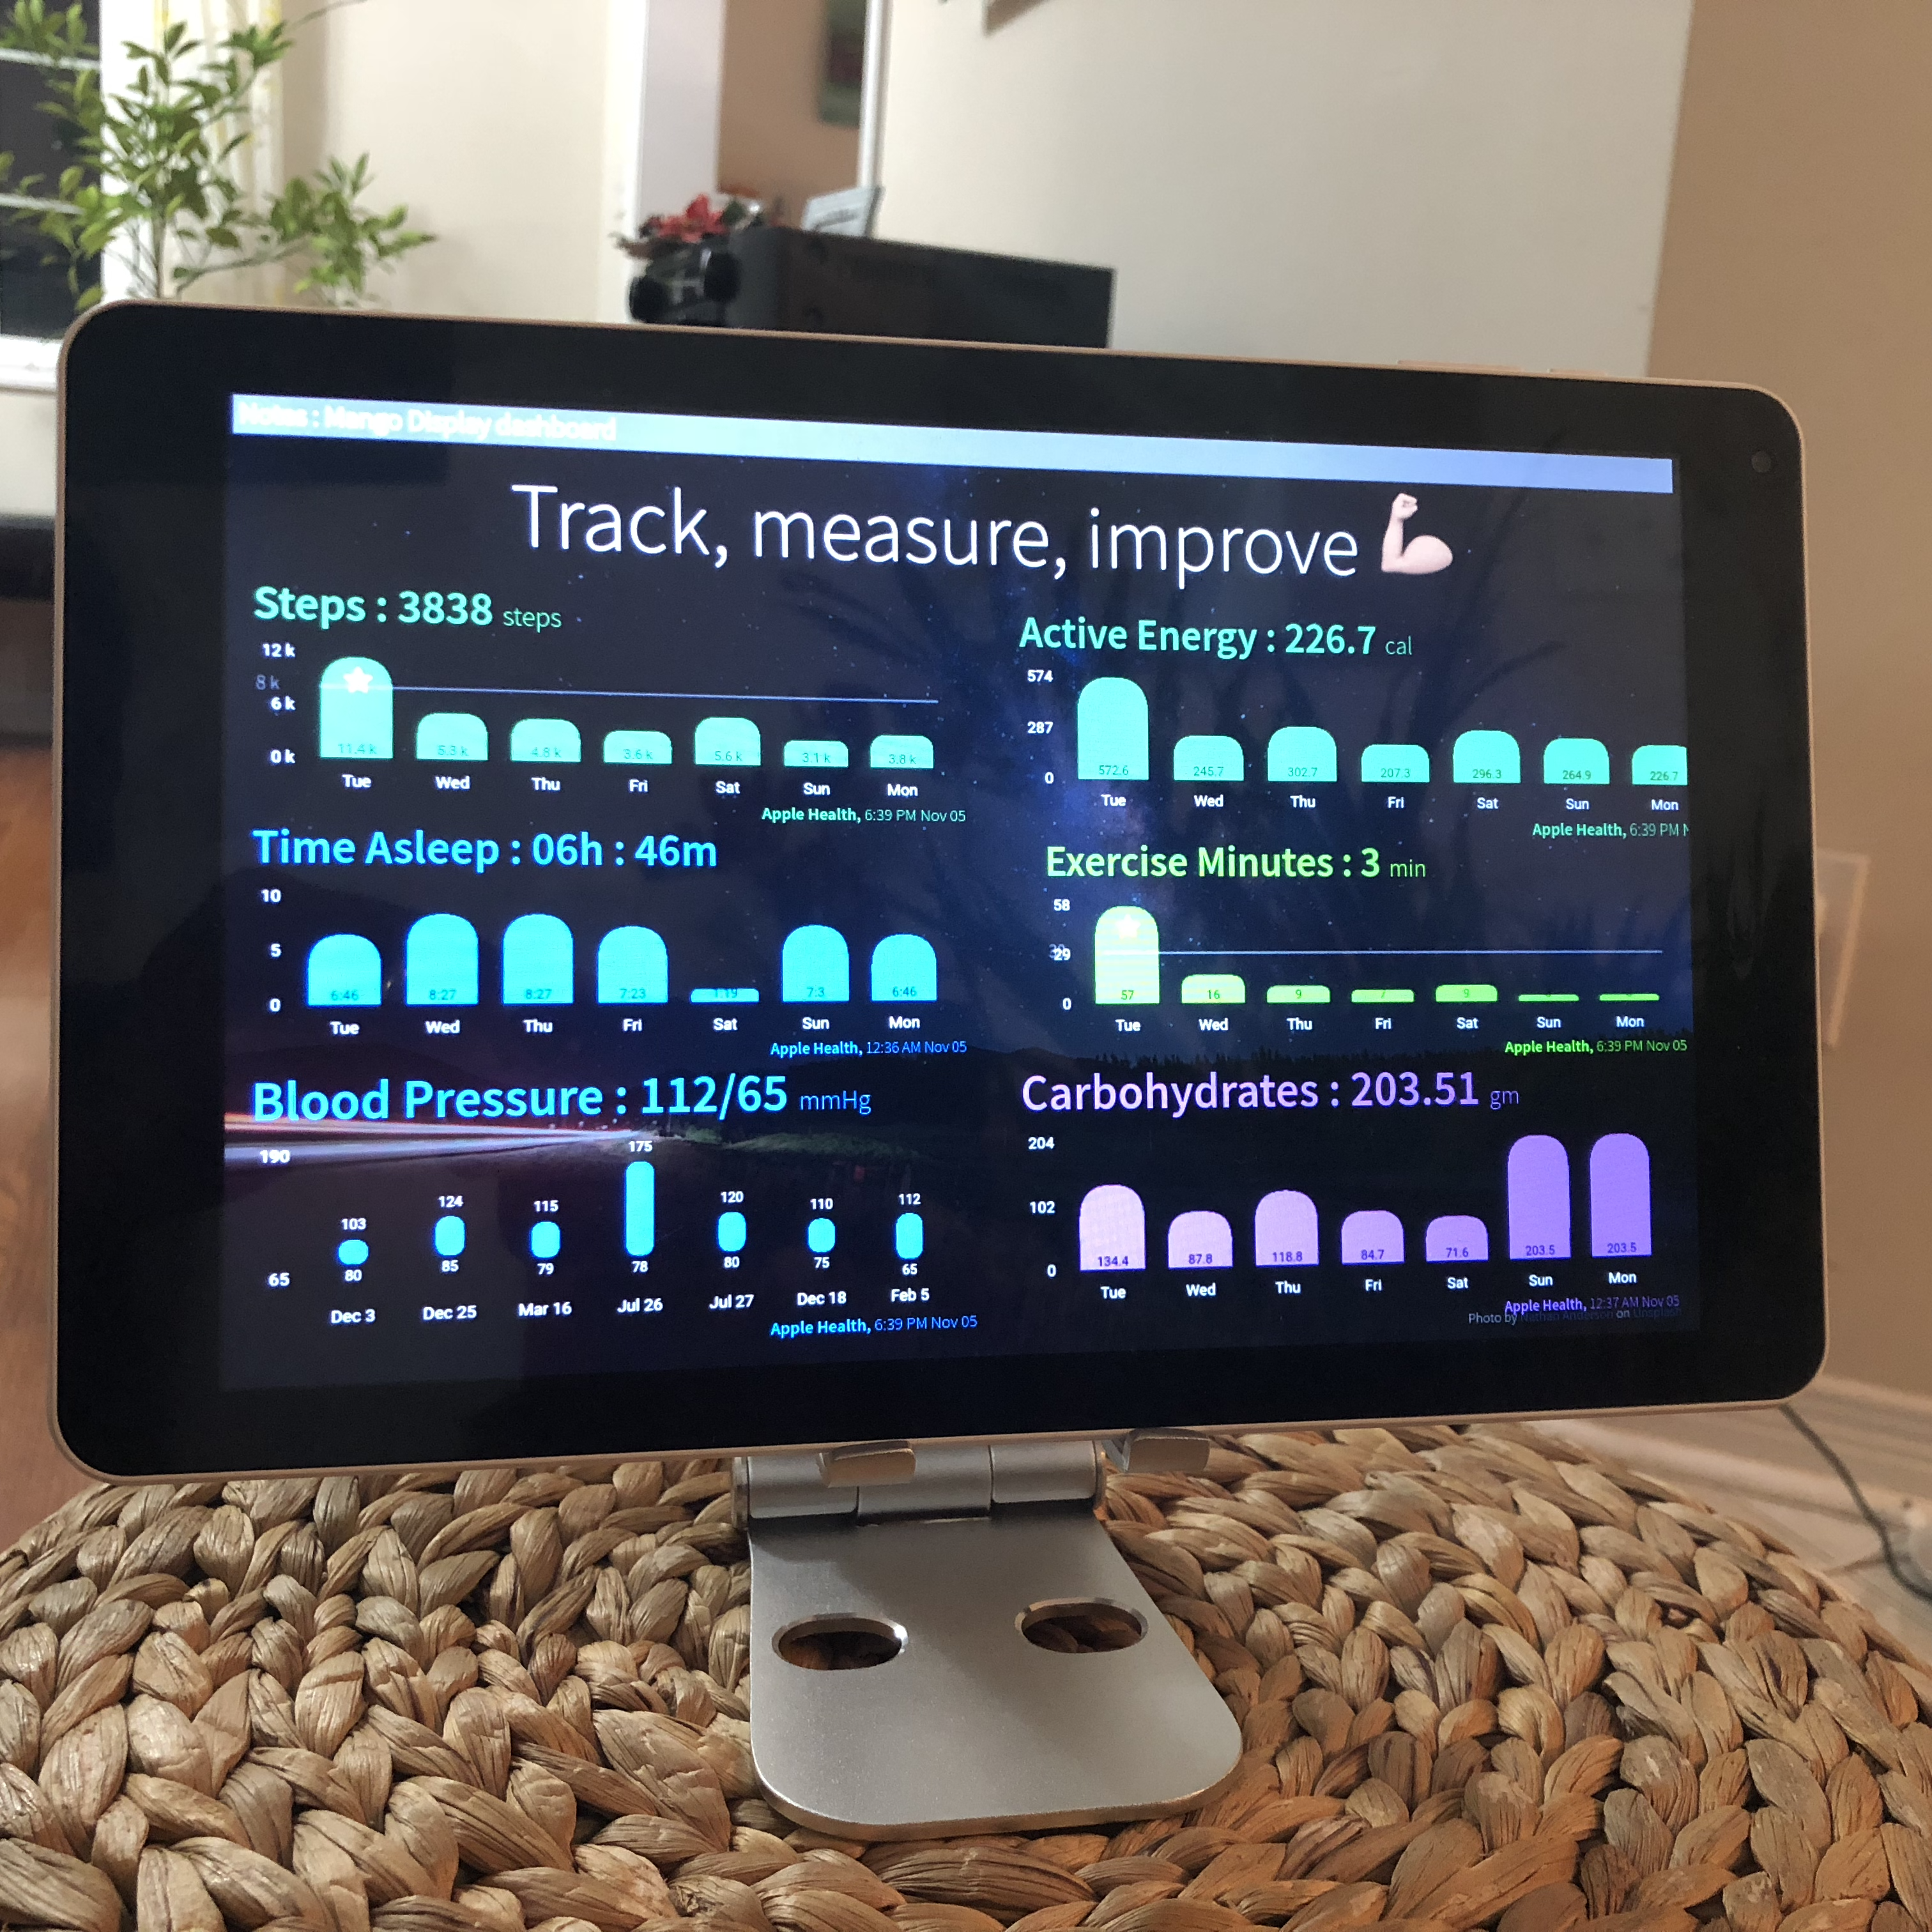 Mango Display - A personal health & fitness digital dashboard on Android